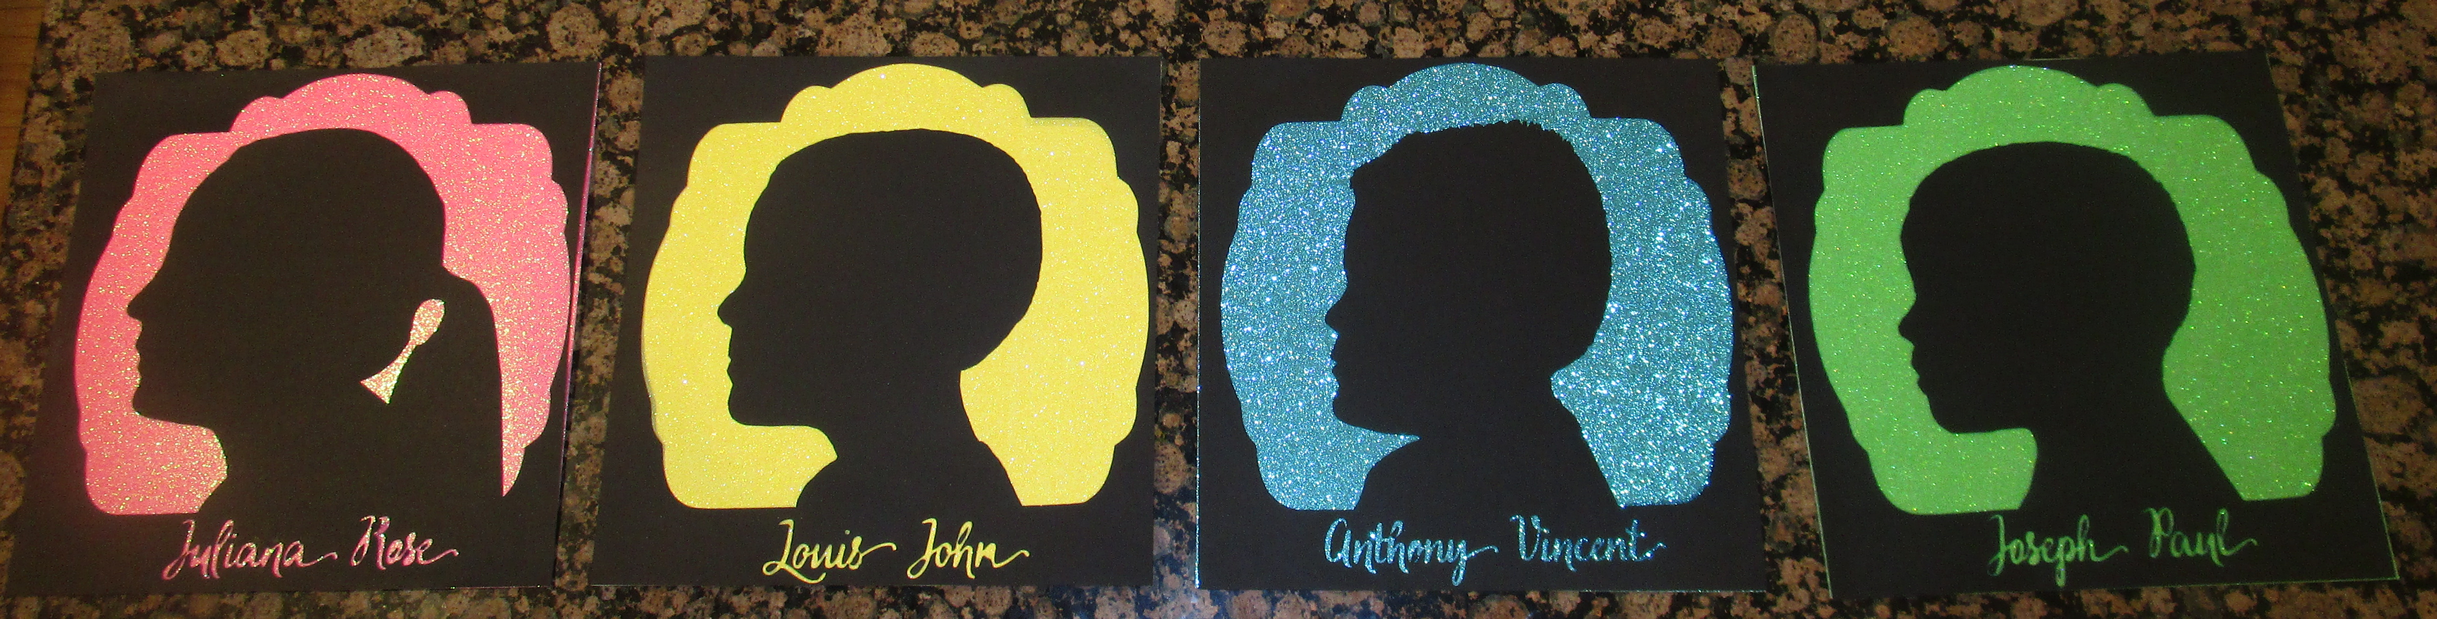 our-kids-silhouette-12x12.png (2437×619)